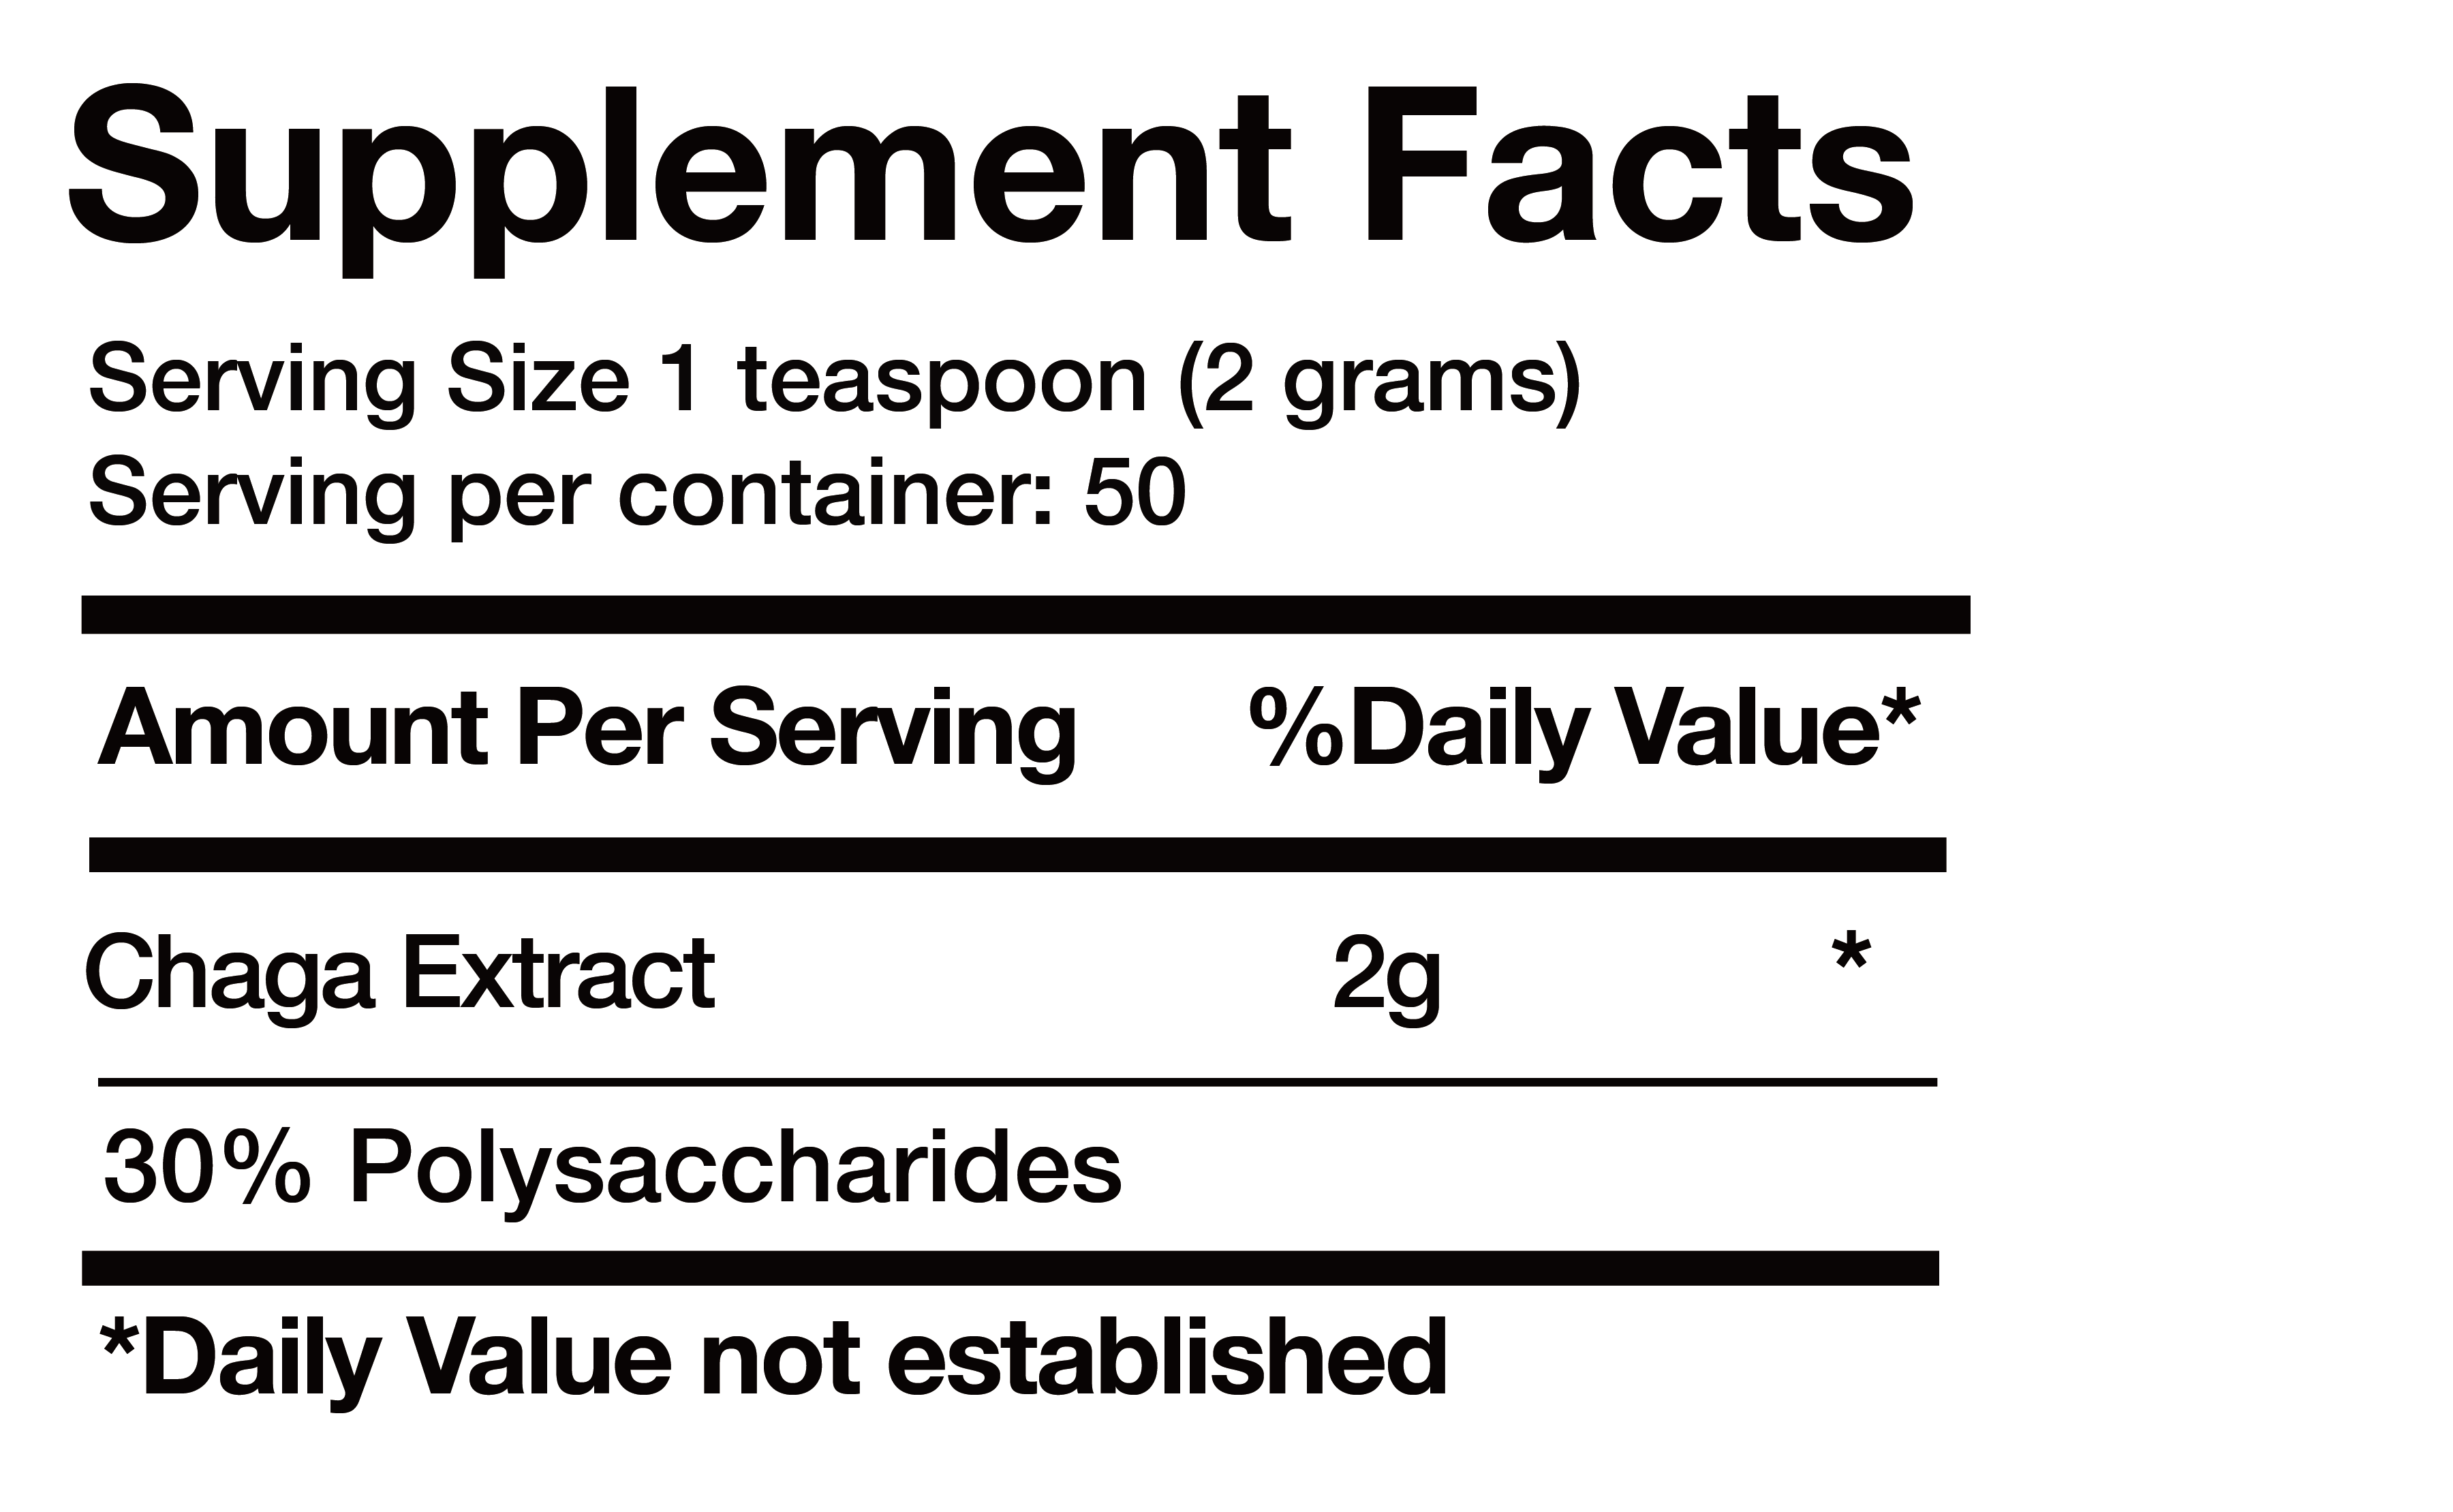 Chaga Extract nutrition facts